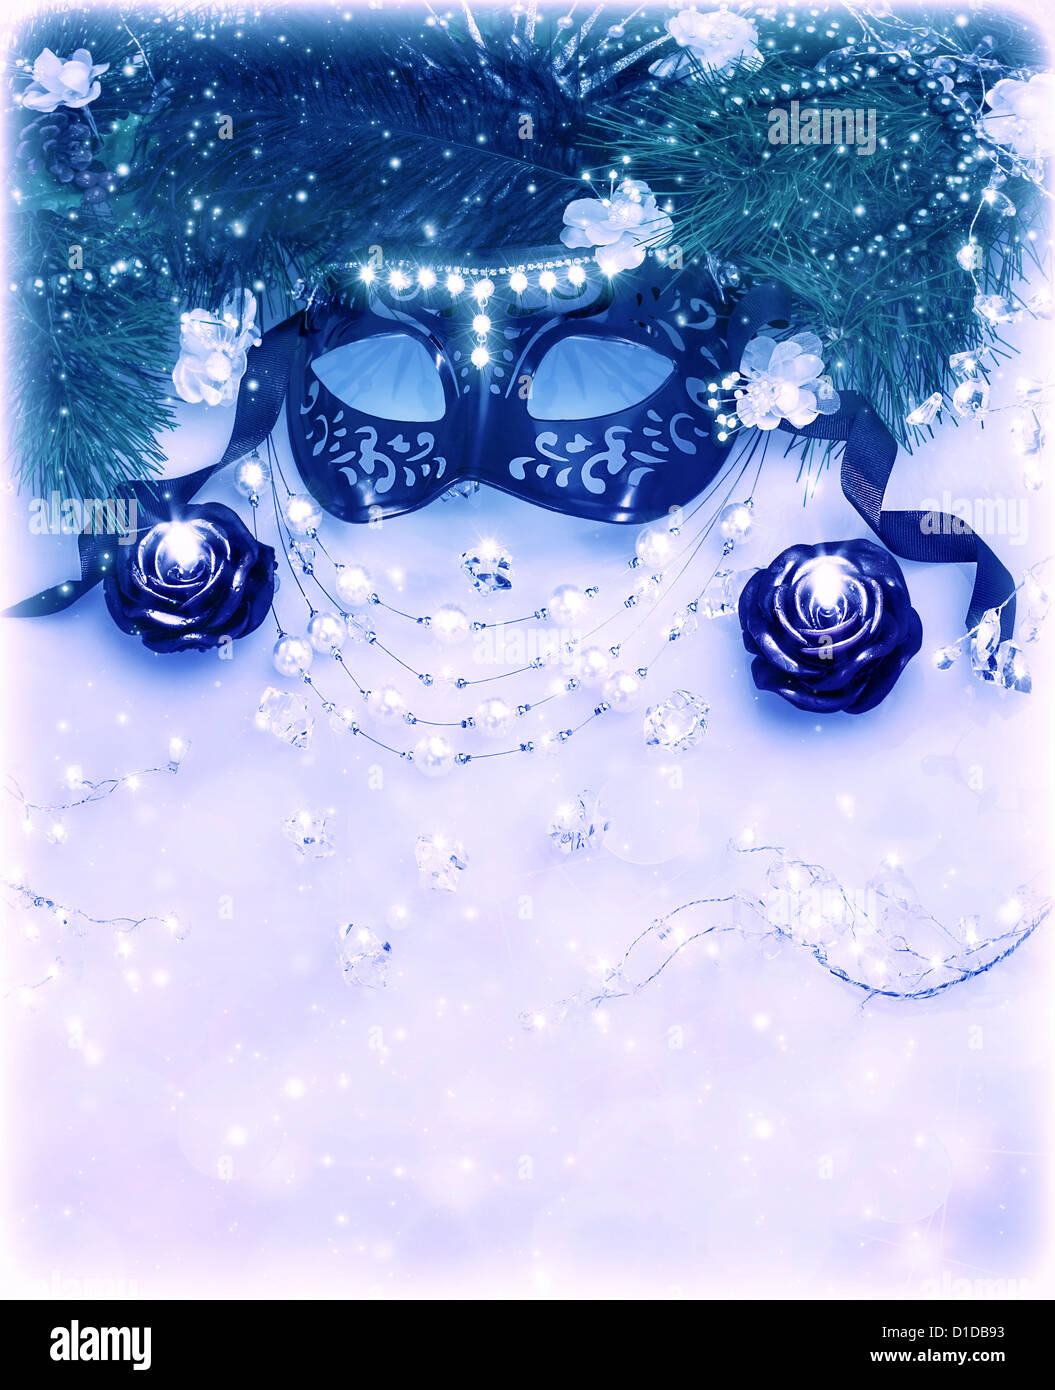 Image Of Blue Festive Border Carnival Mask With Diamonds Jewelery Pearls Necklace Luxury Masquerade Accessories On White